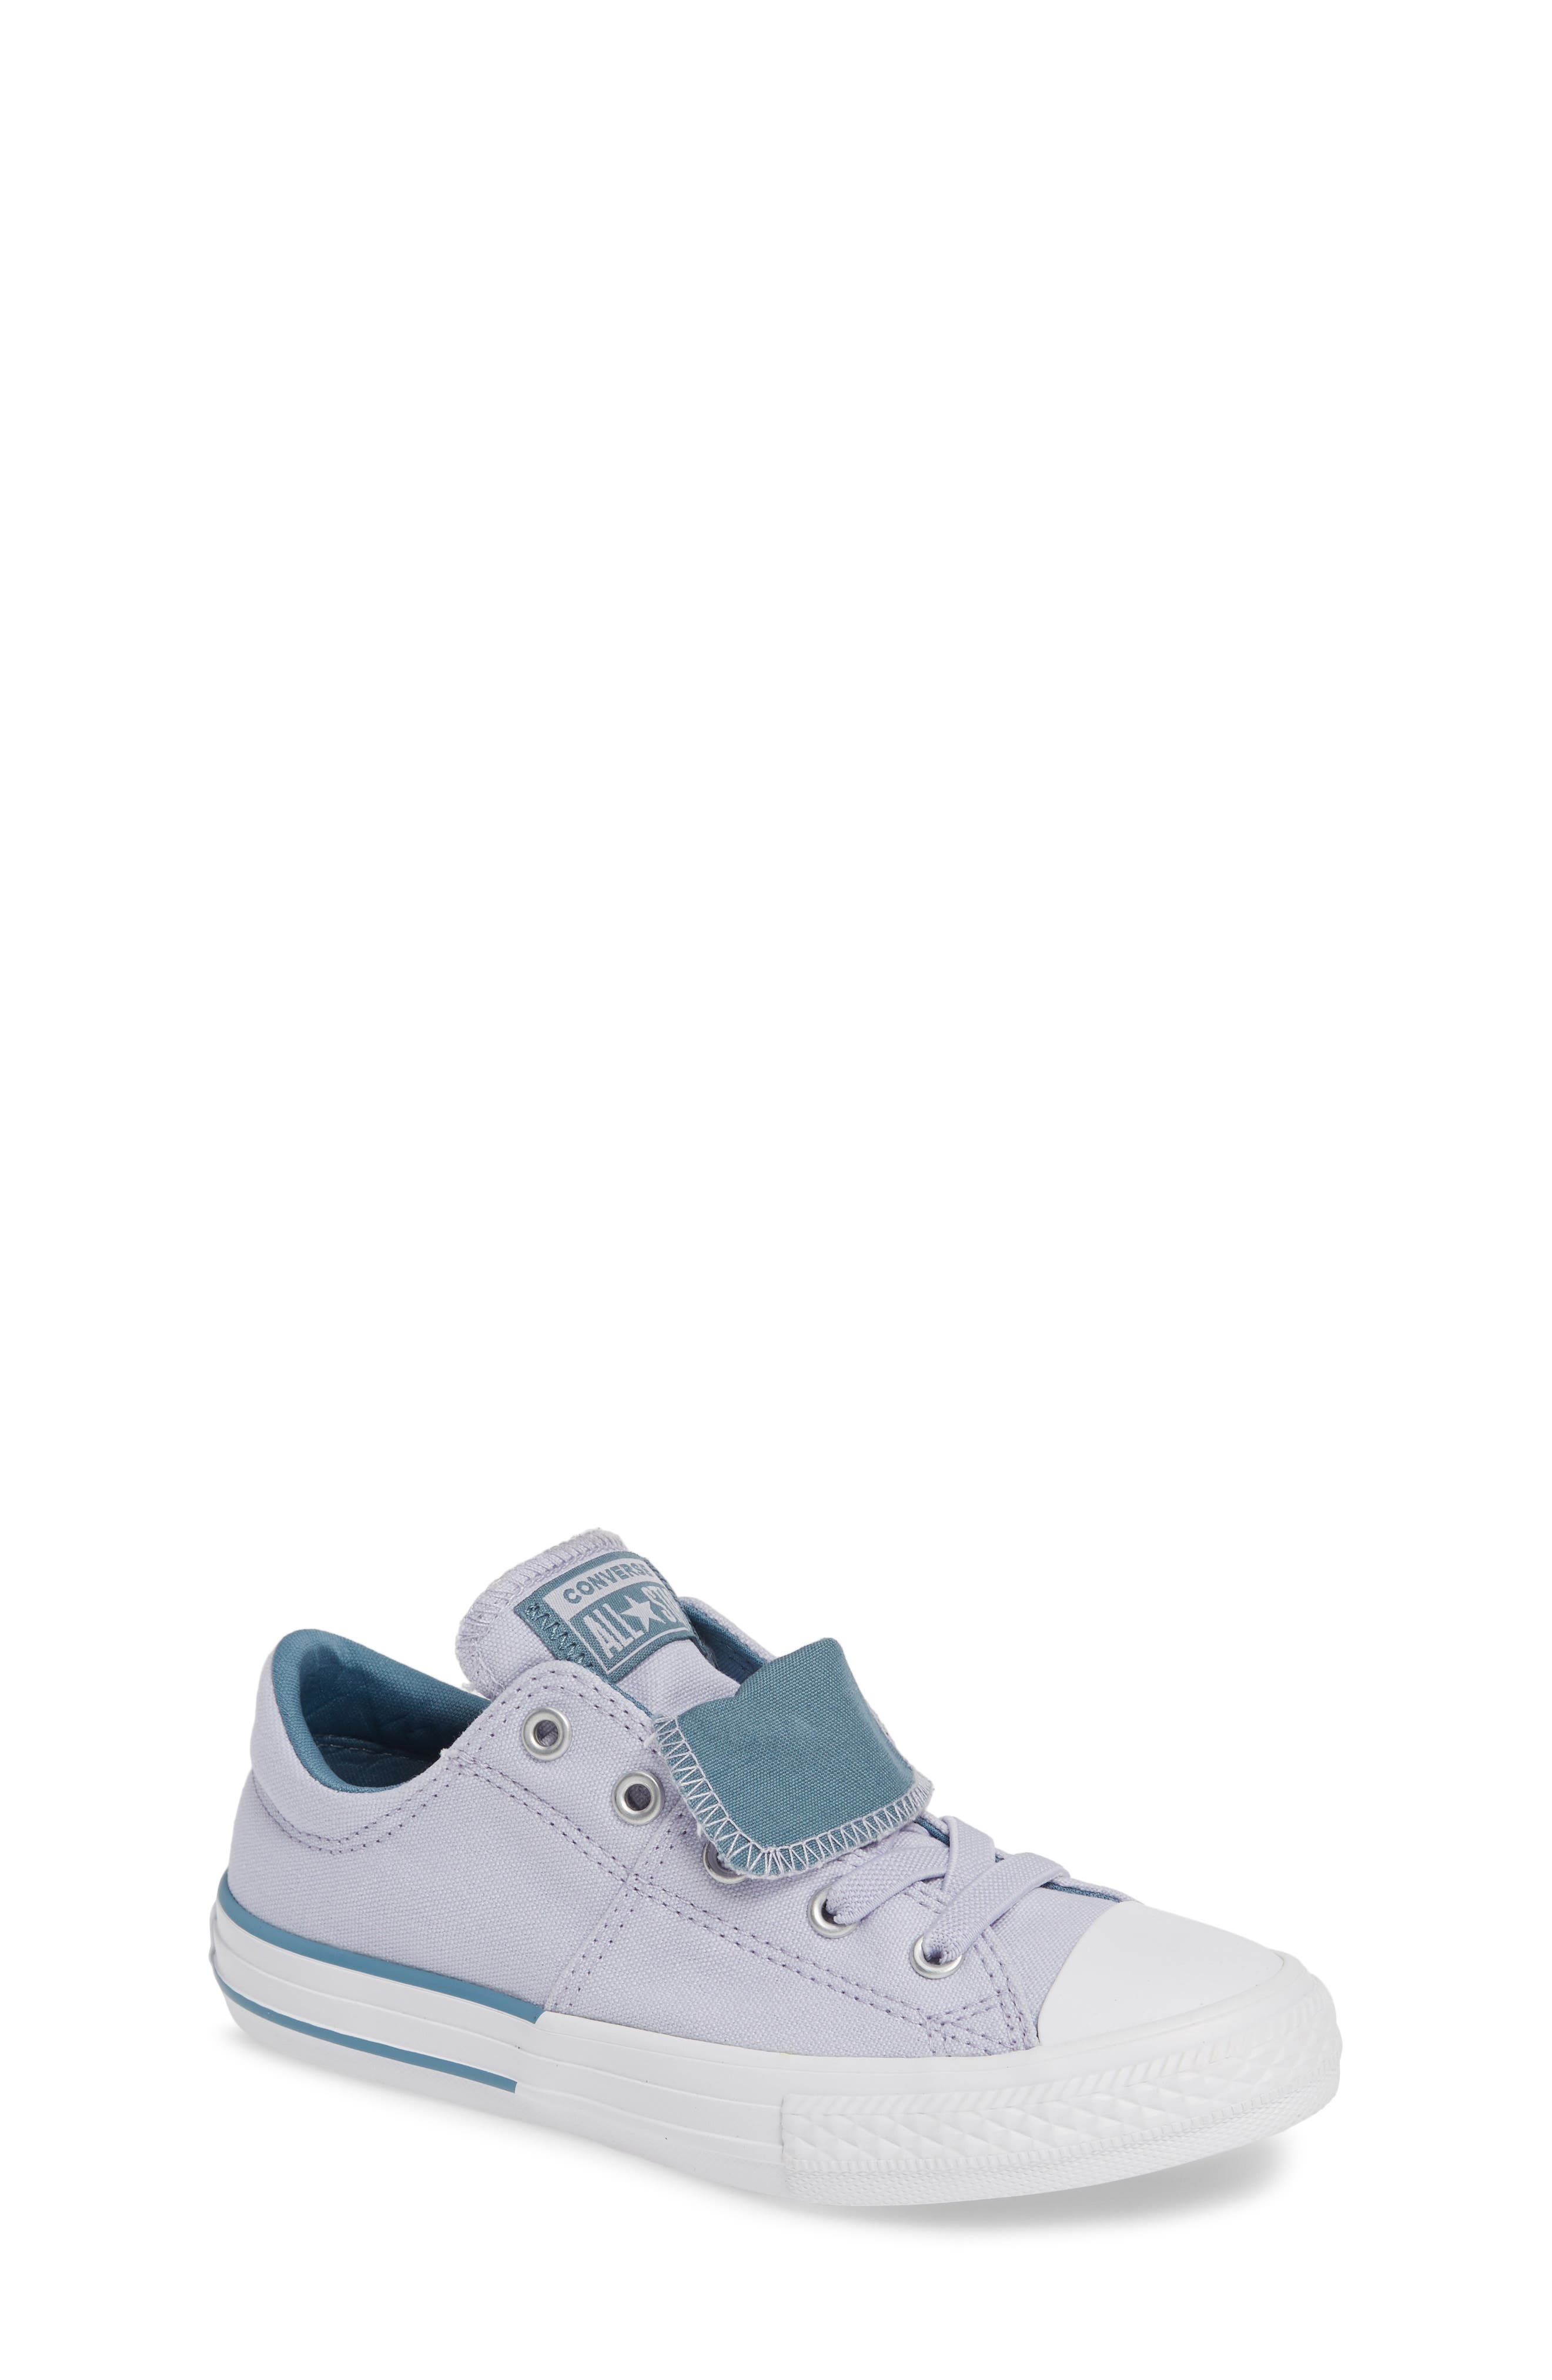 CONVERSE Chuck Taylor<sup>®</sup> All Star<sup>®</sup> Maddie Double Tongue Sneaker, Main, color, OXYGEN PURPLE/ CELESTIAL TEAL